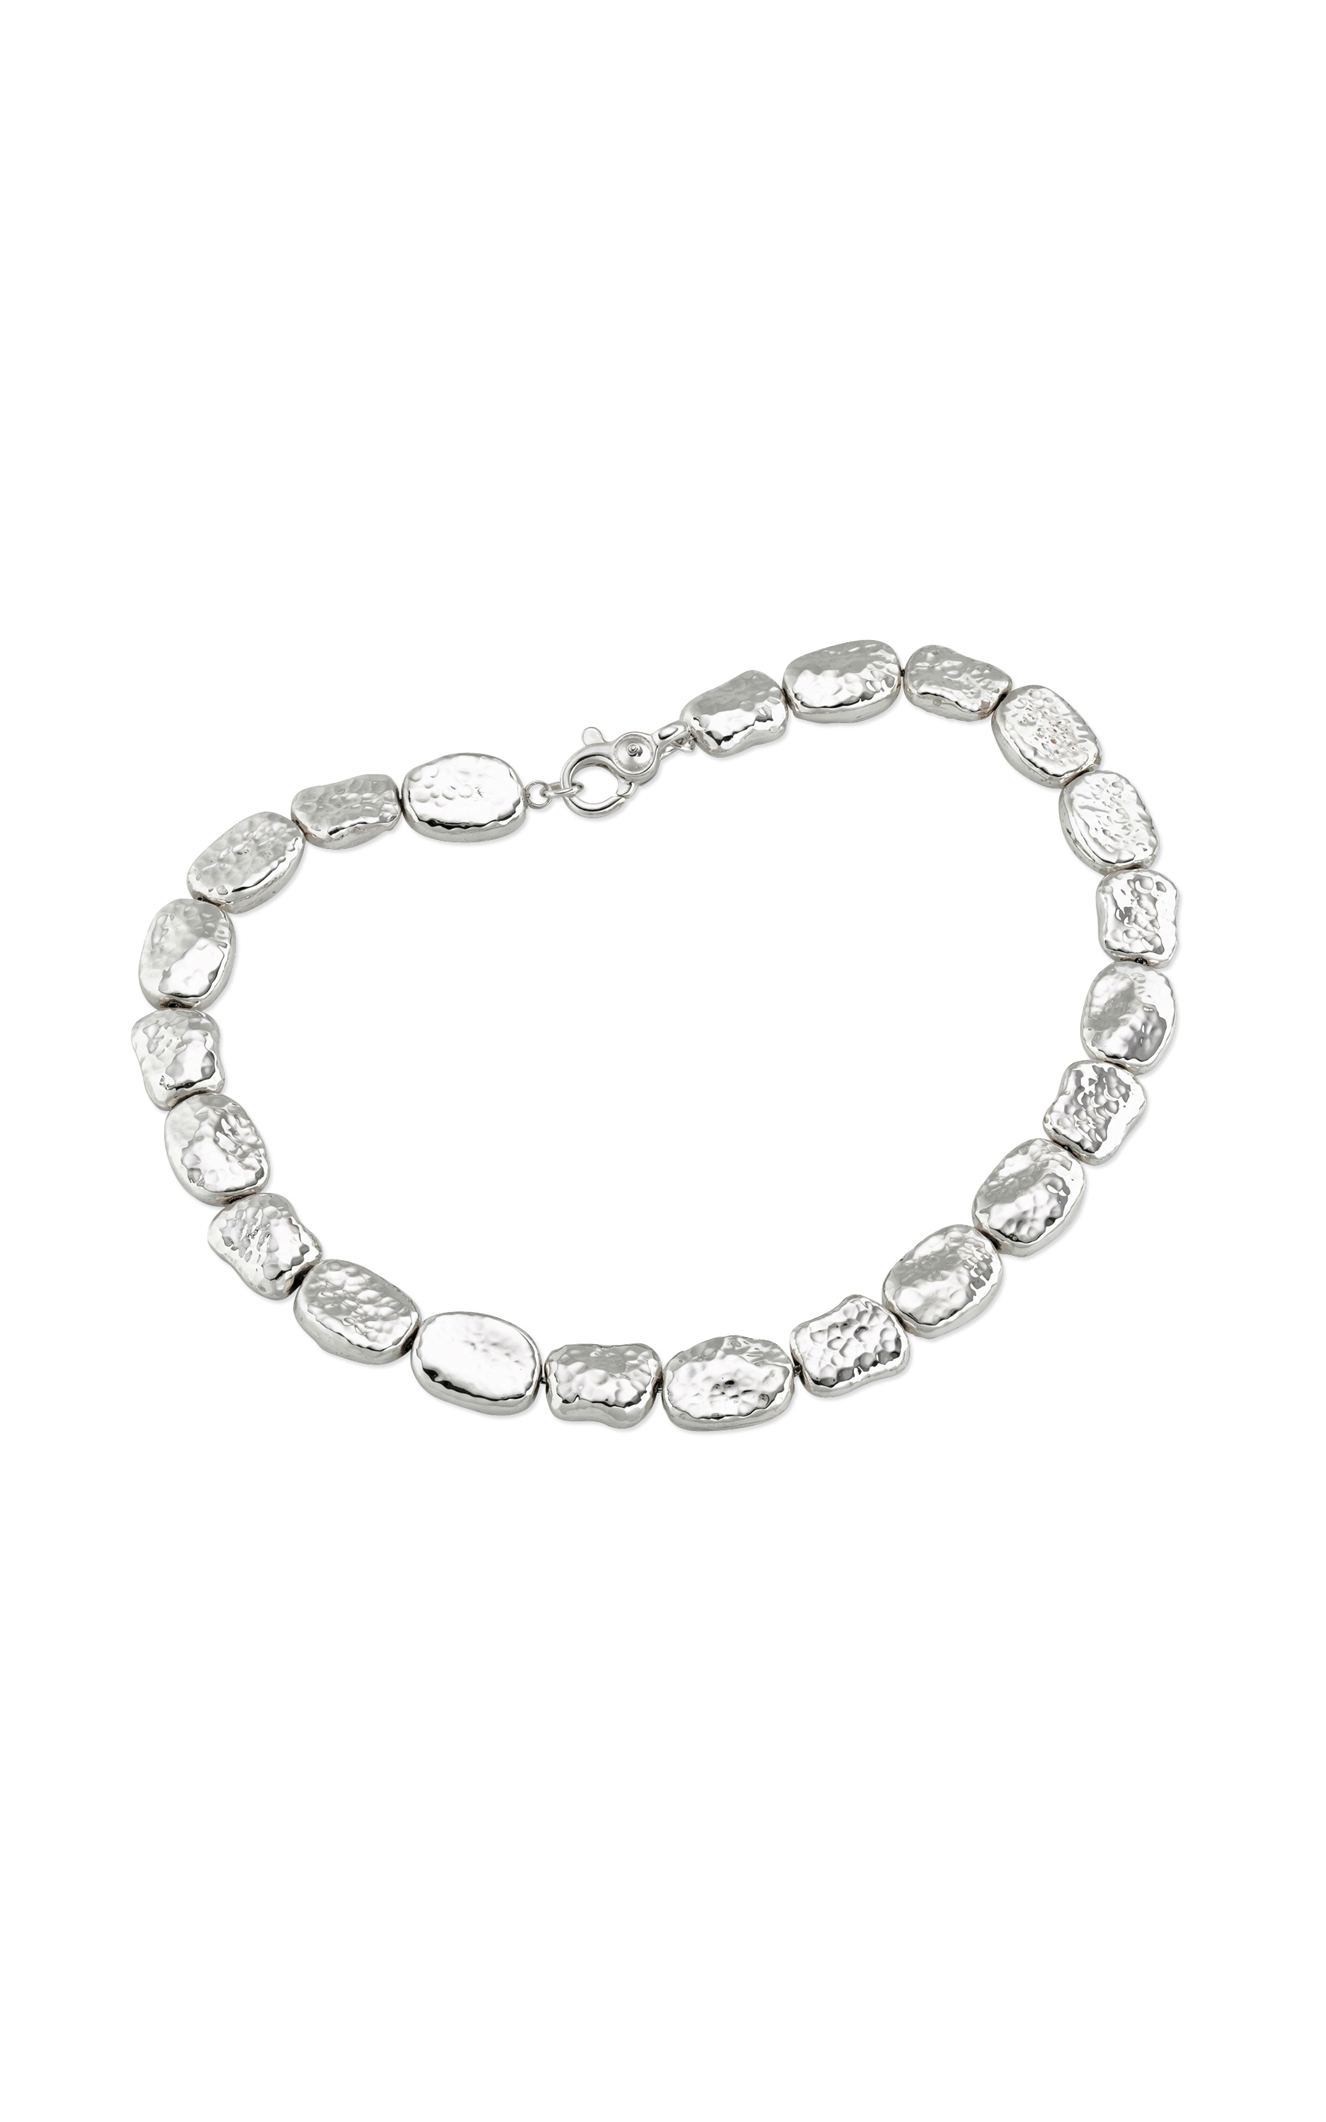 Zina Touchstone Necklace A1674-17 product image